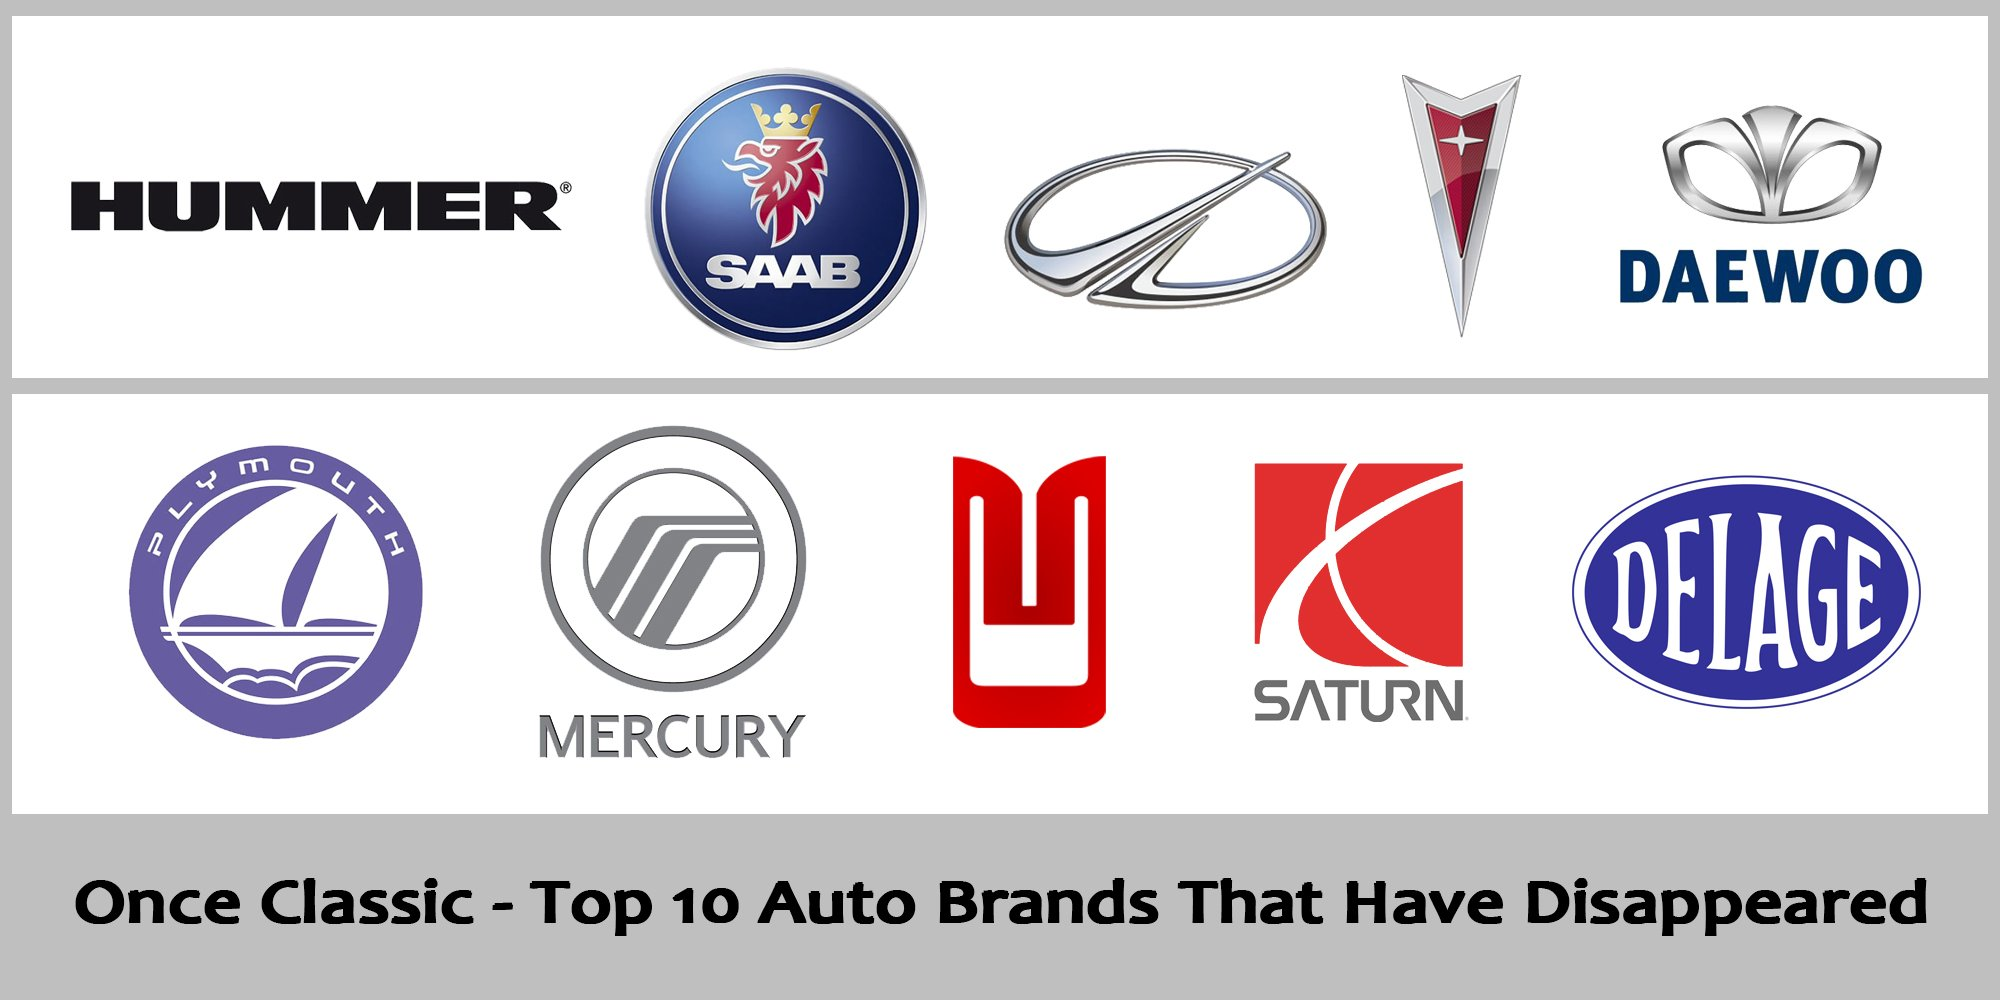 Once Classic - Top 10 Auto Brands That Have Disappeared (Part One)